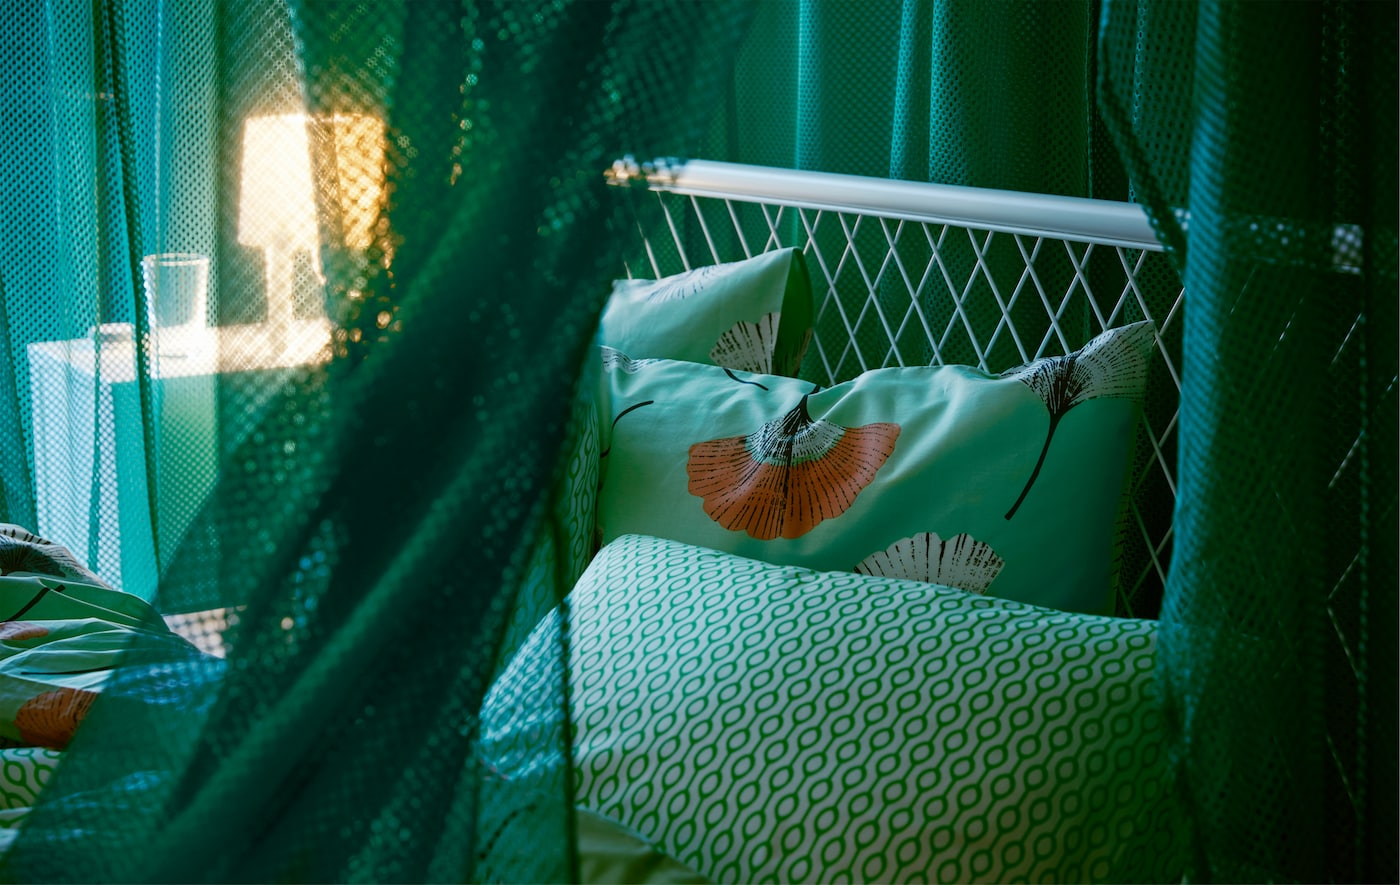 Draped green IKEA GRÅTISTEL net curtains in a bedroom, creating a room in the room, while letting through a little light.